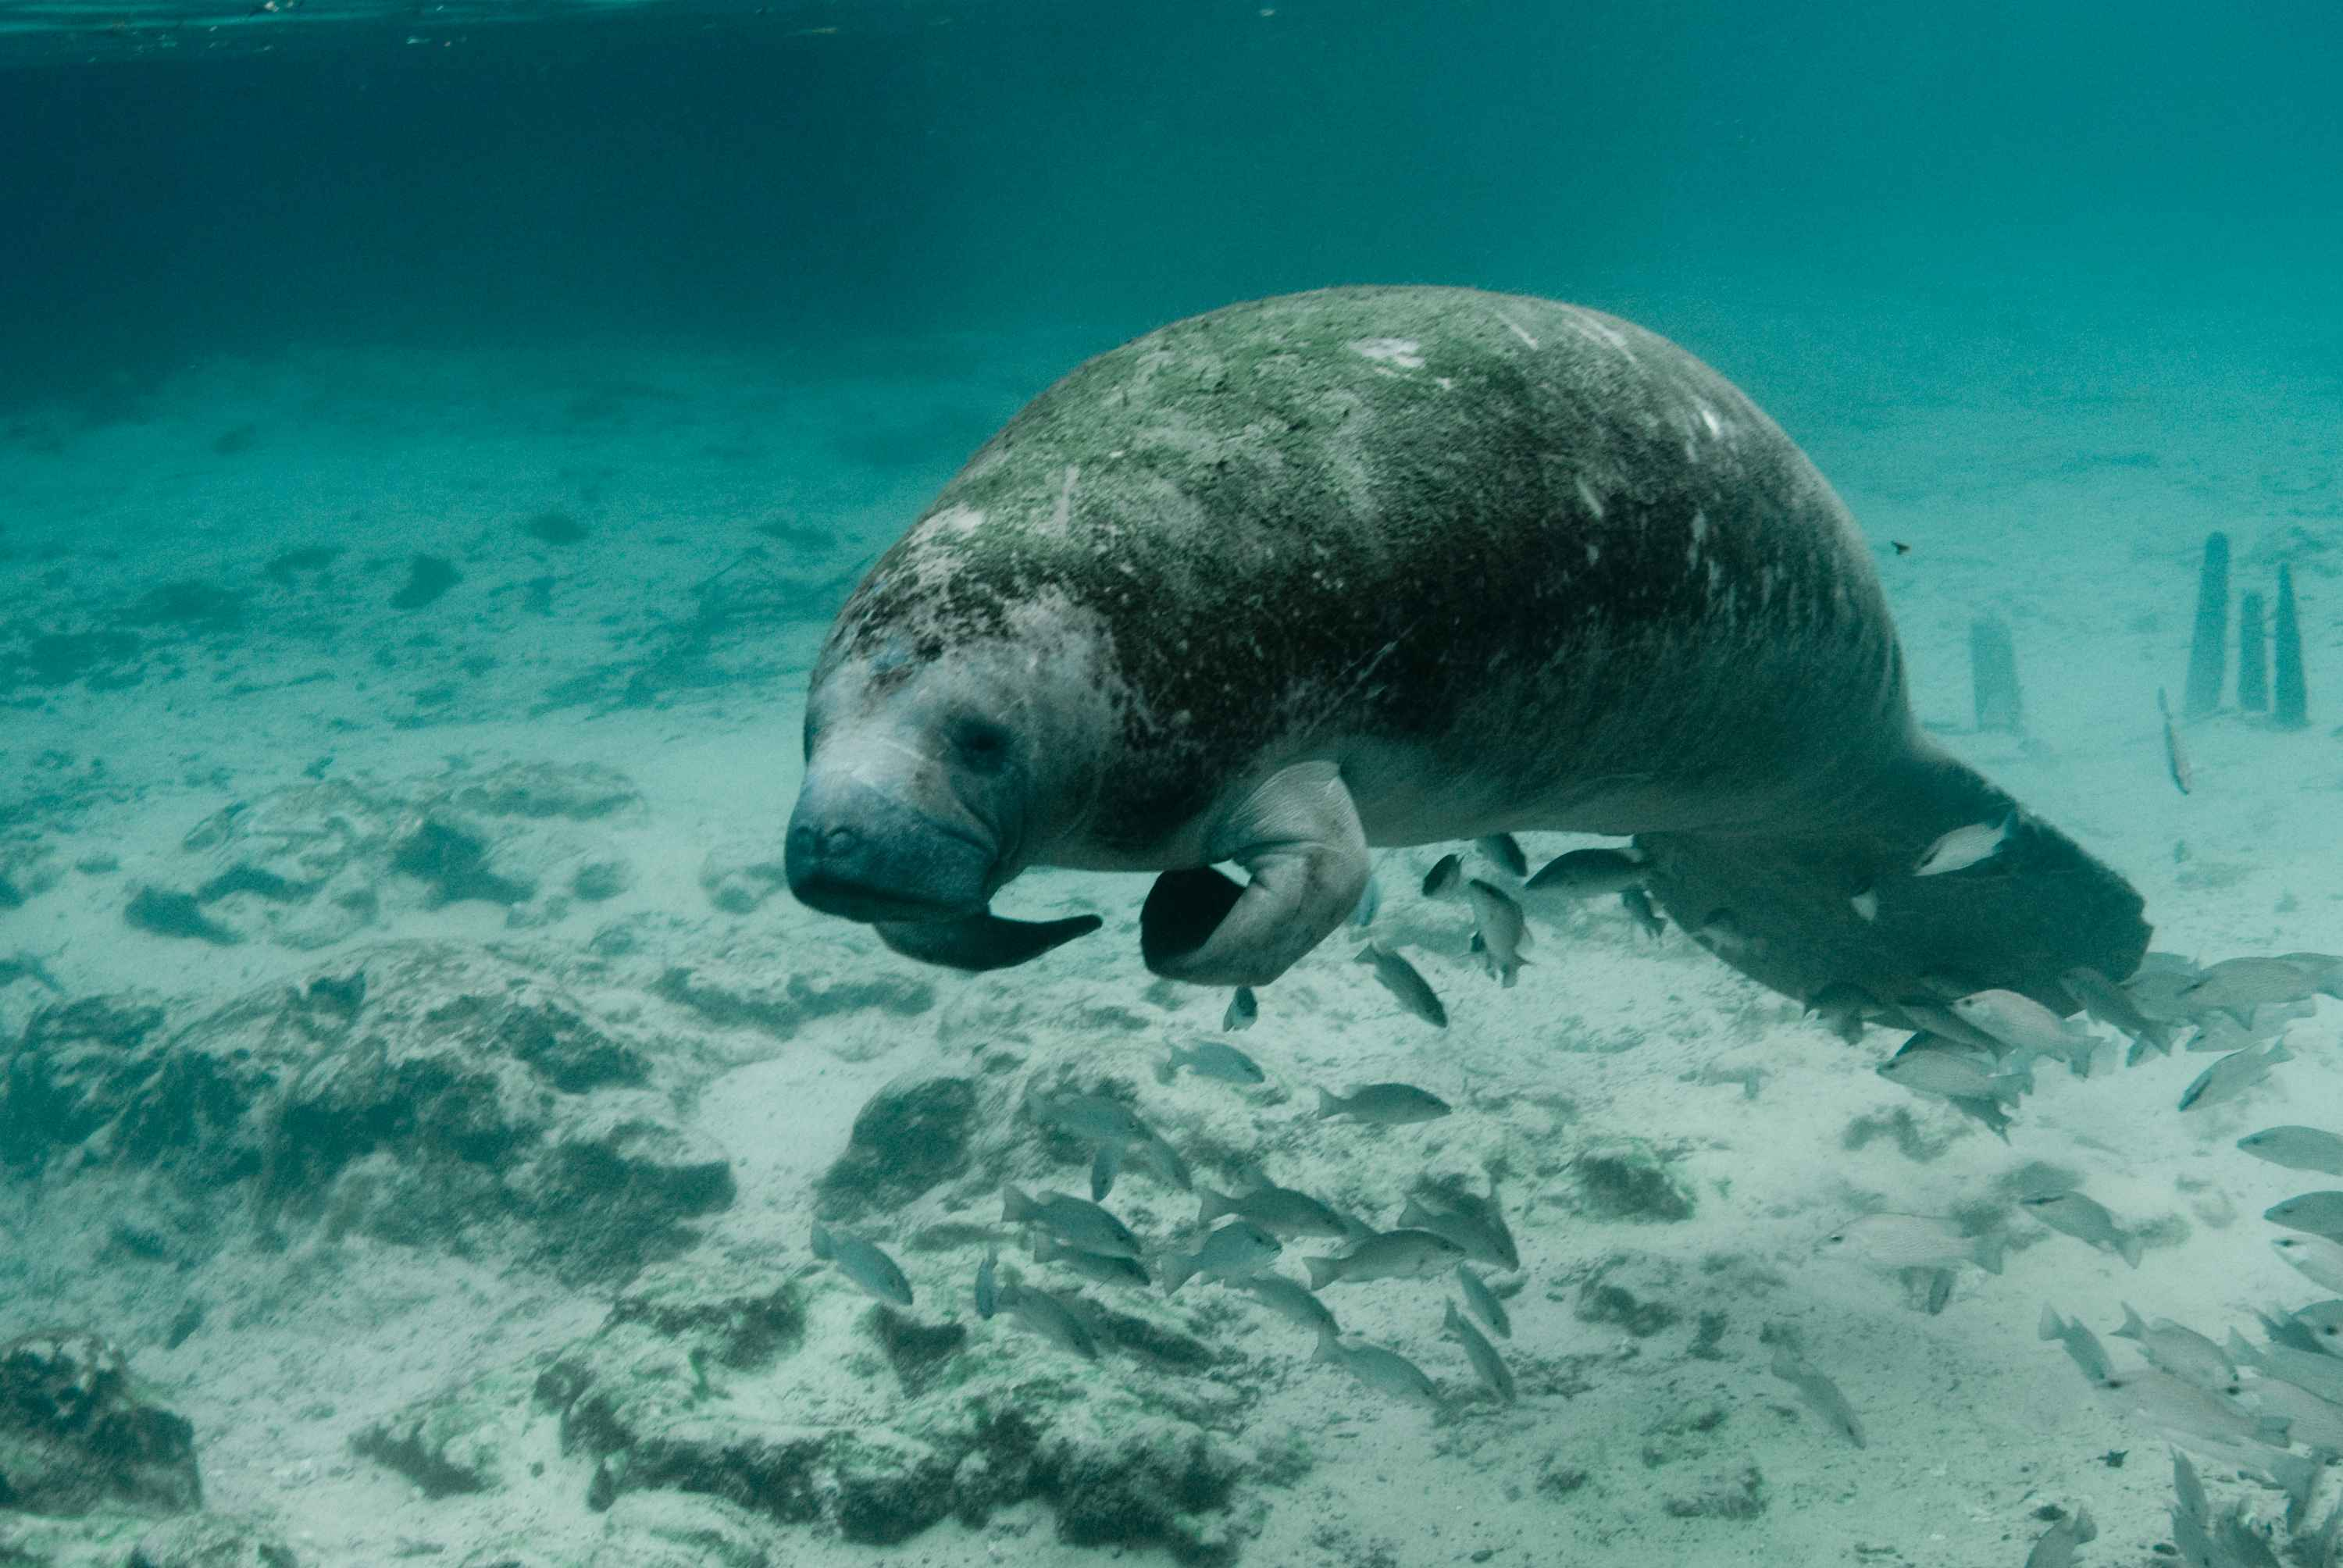 an analysis of the endangered mermaids the manatees From mermaids to manatees: (iucn) has listed all three species of manatees as vulnerable to extinction, and a few manatee subspecies as endangered.